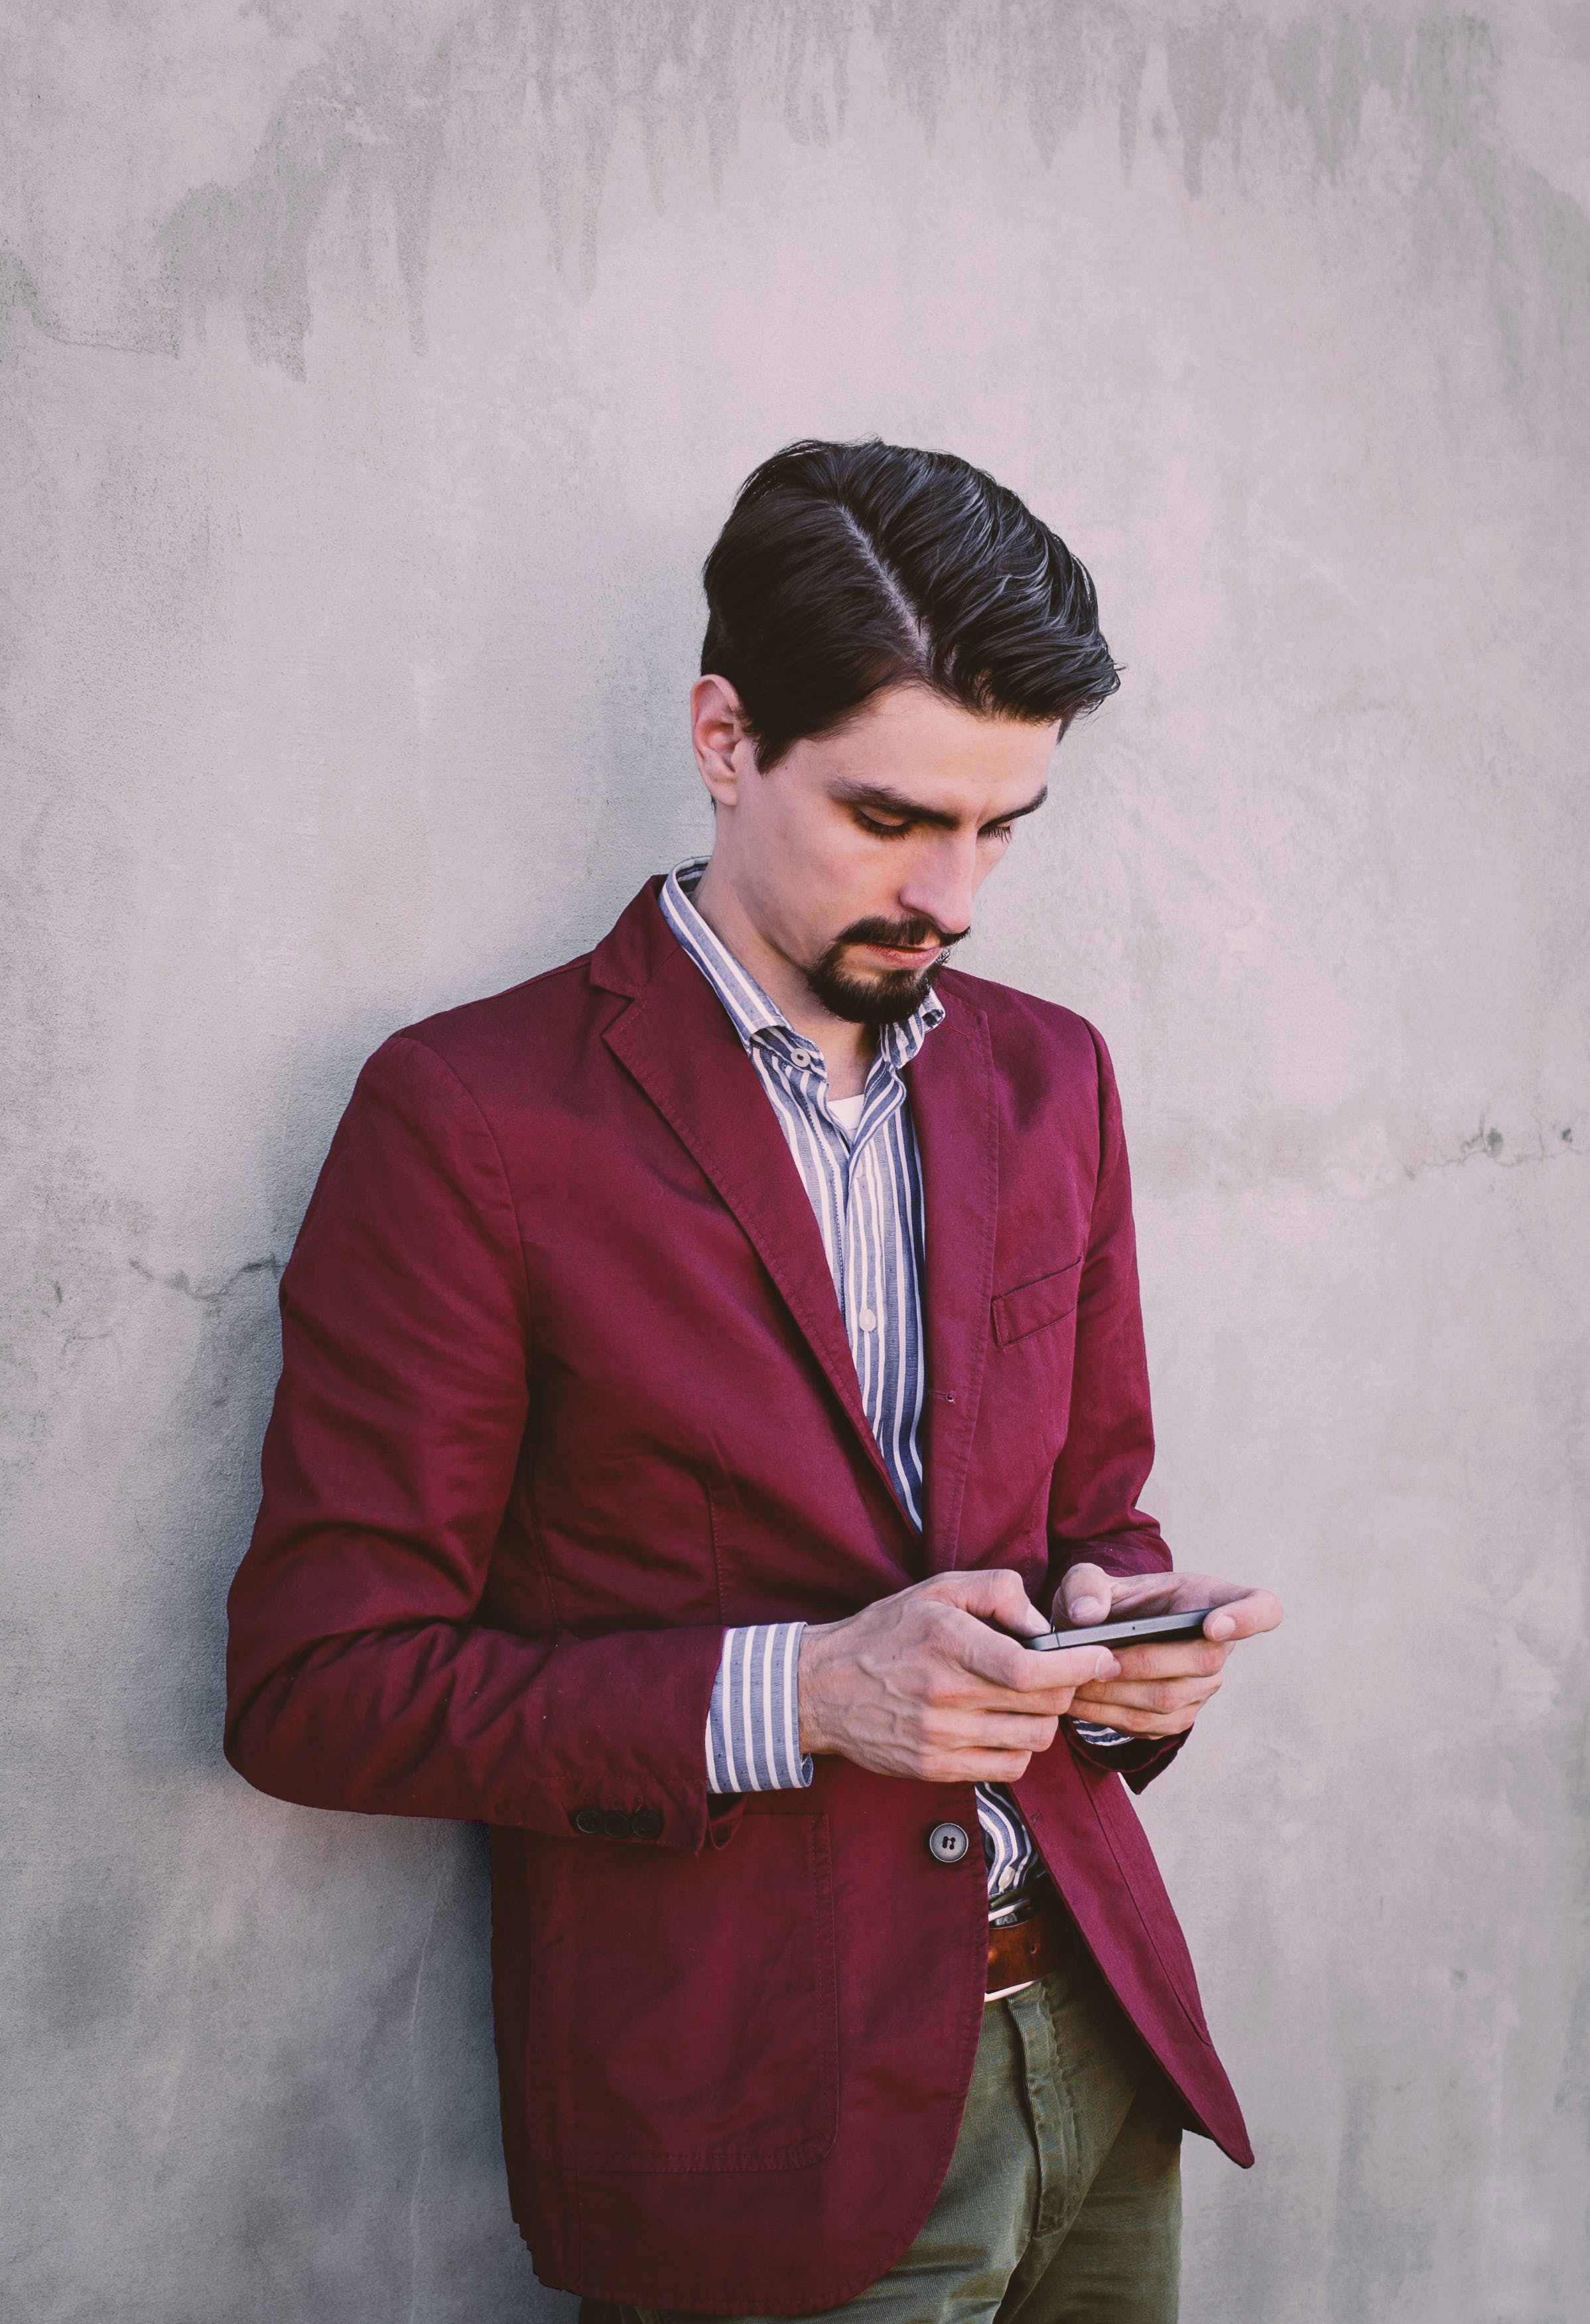 Man Wearing Maroon Blazer Leaning on Gray Concrete Wall While Using His Smartphone